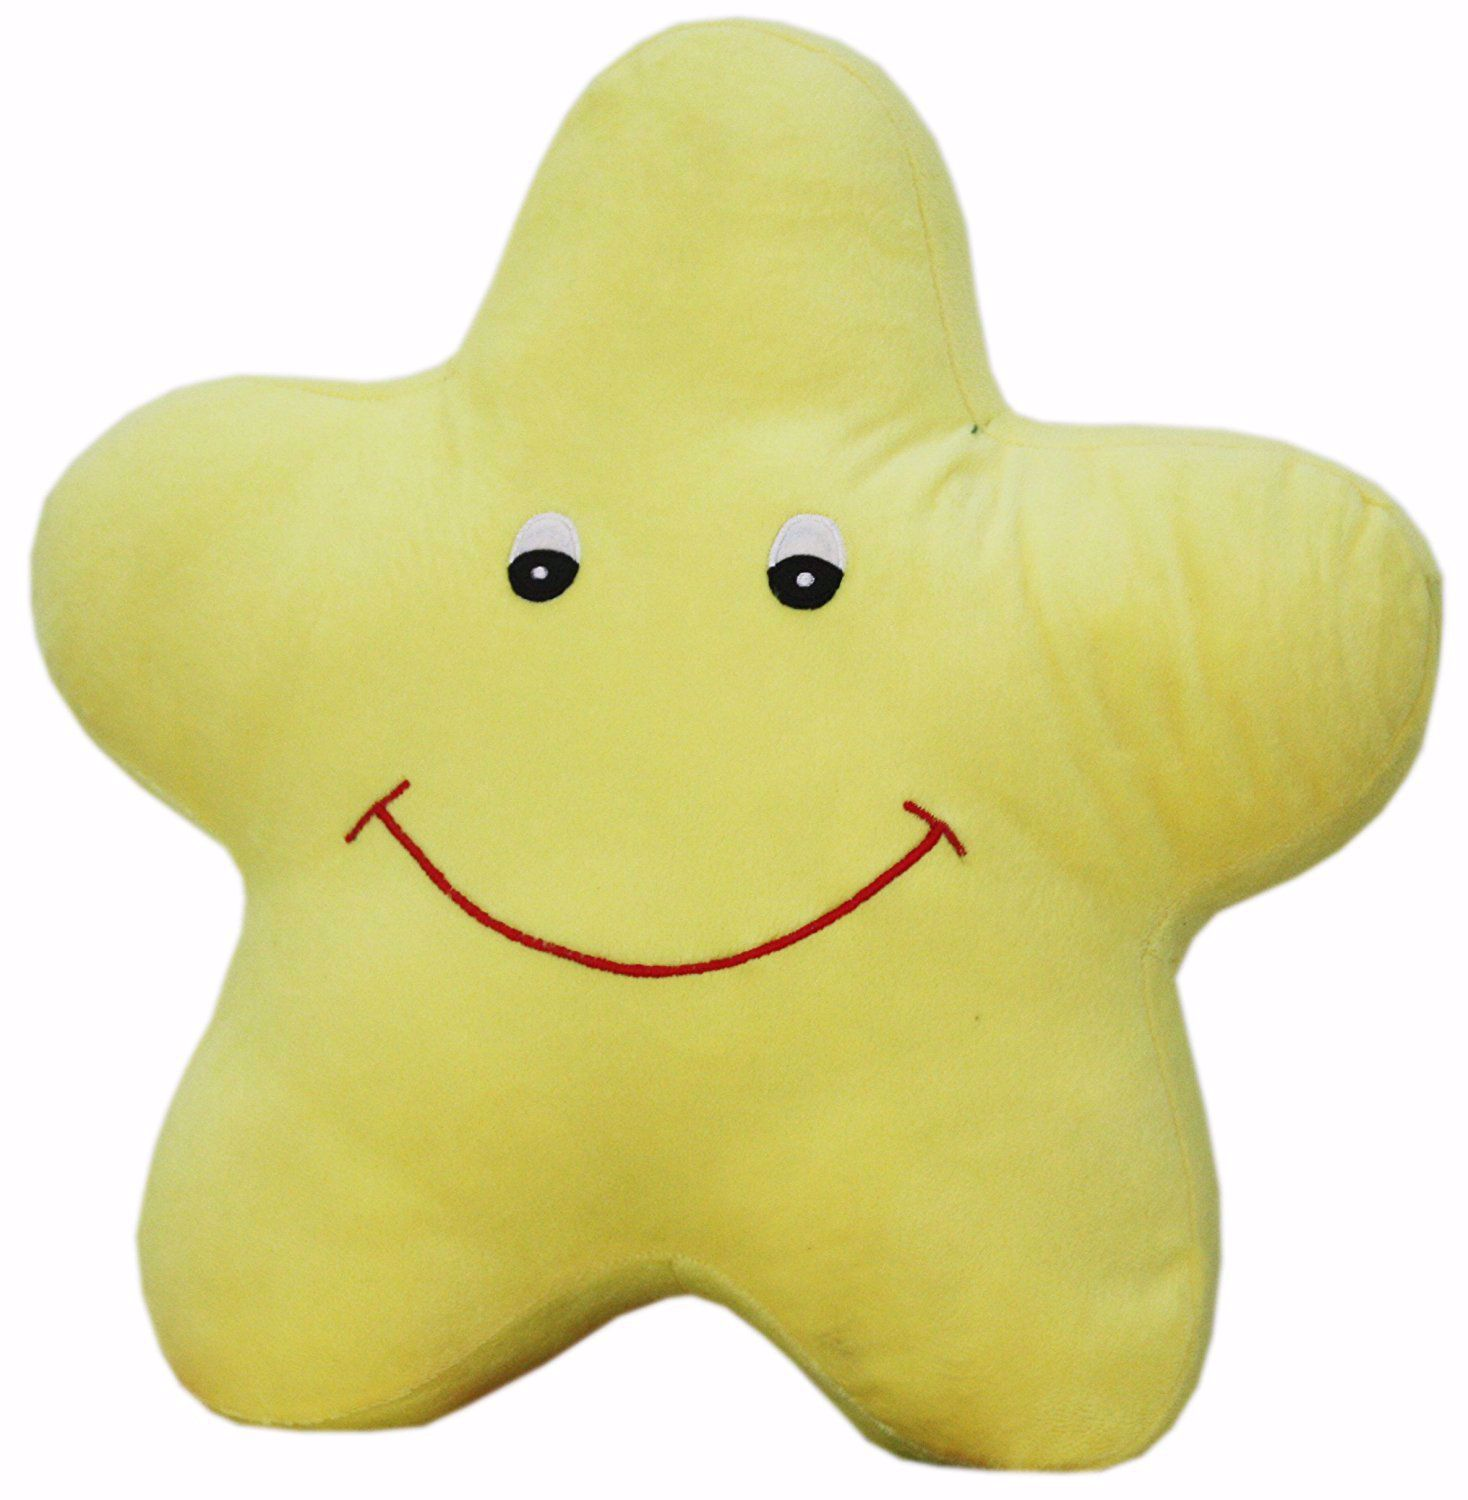 Pillow Smiling Star Plush Stuffed Toys (Yellow, 14x14 Inches),yellow star cushion online